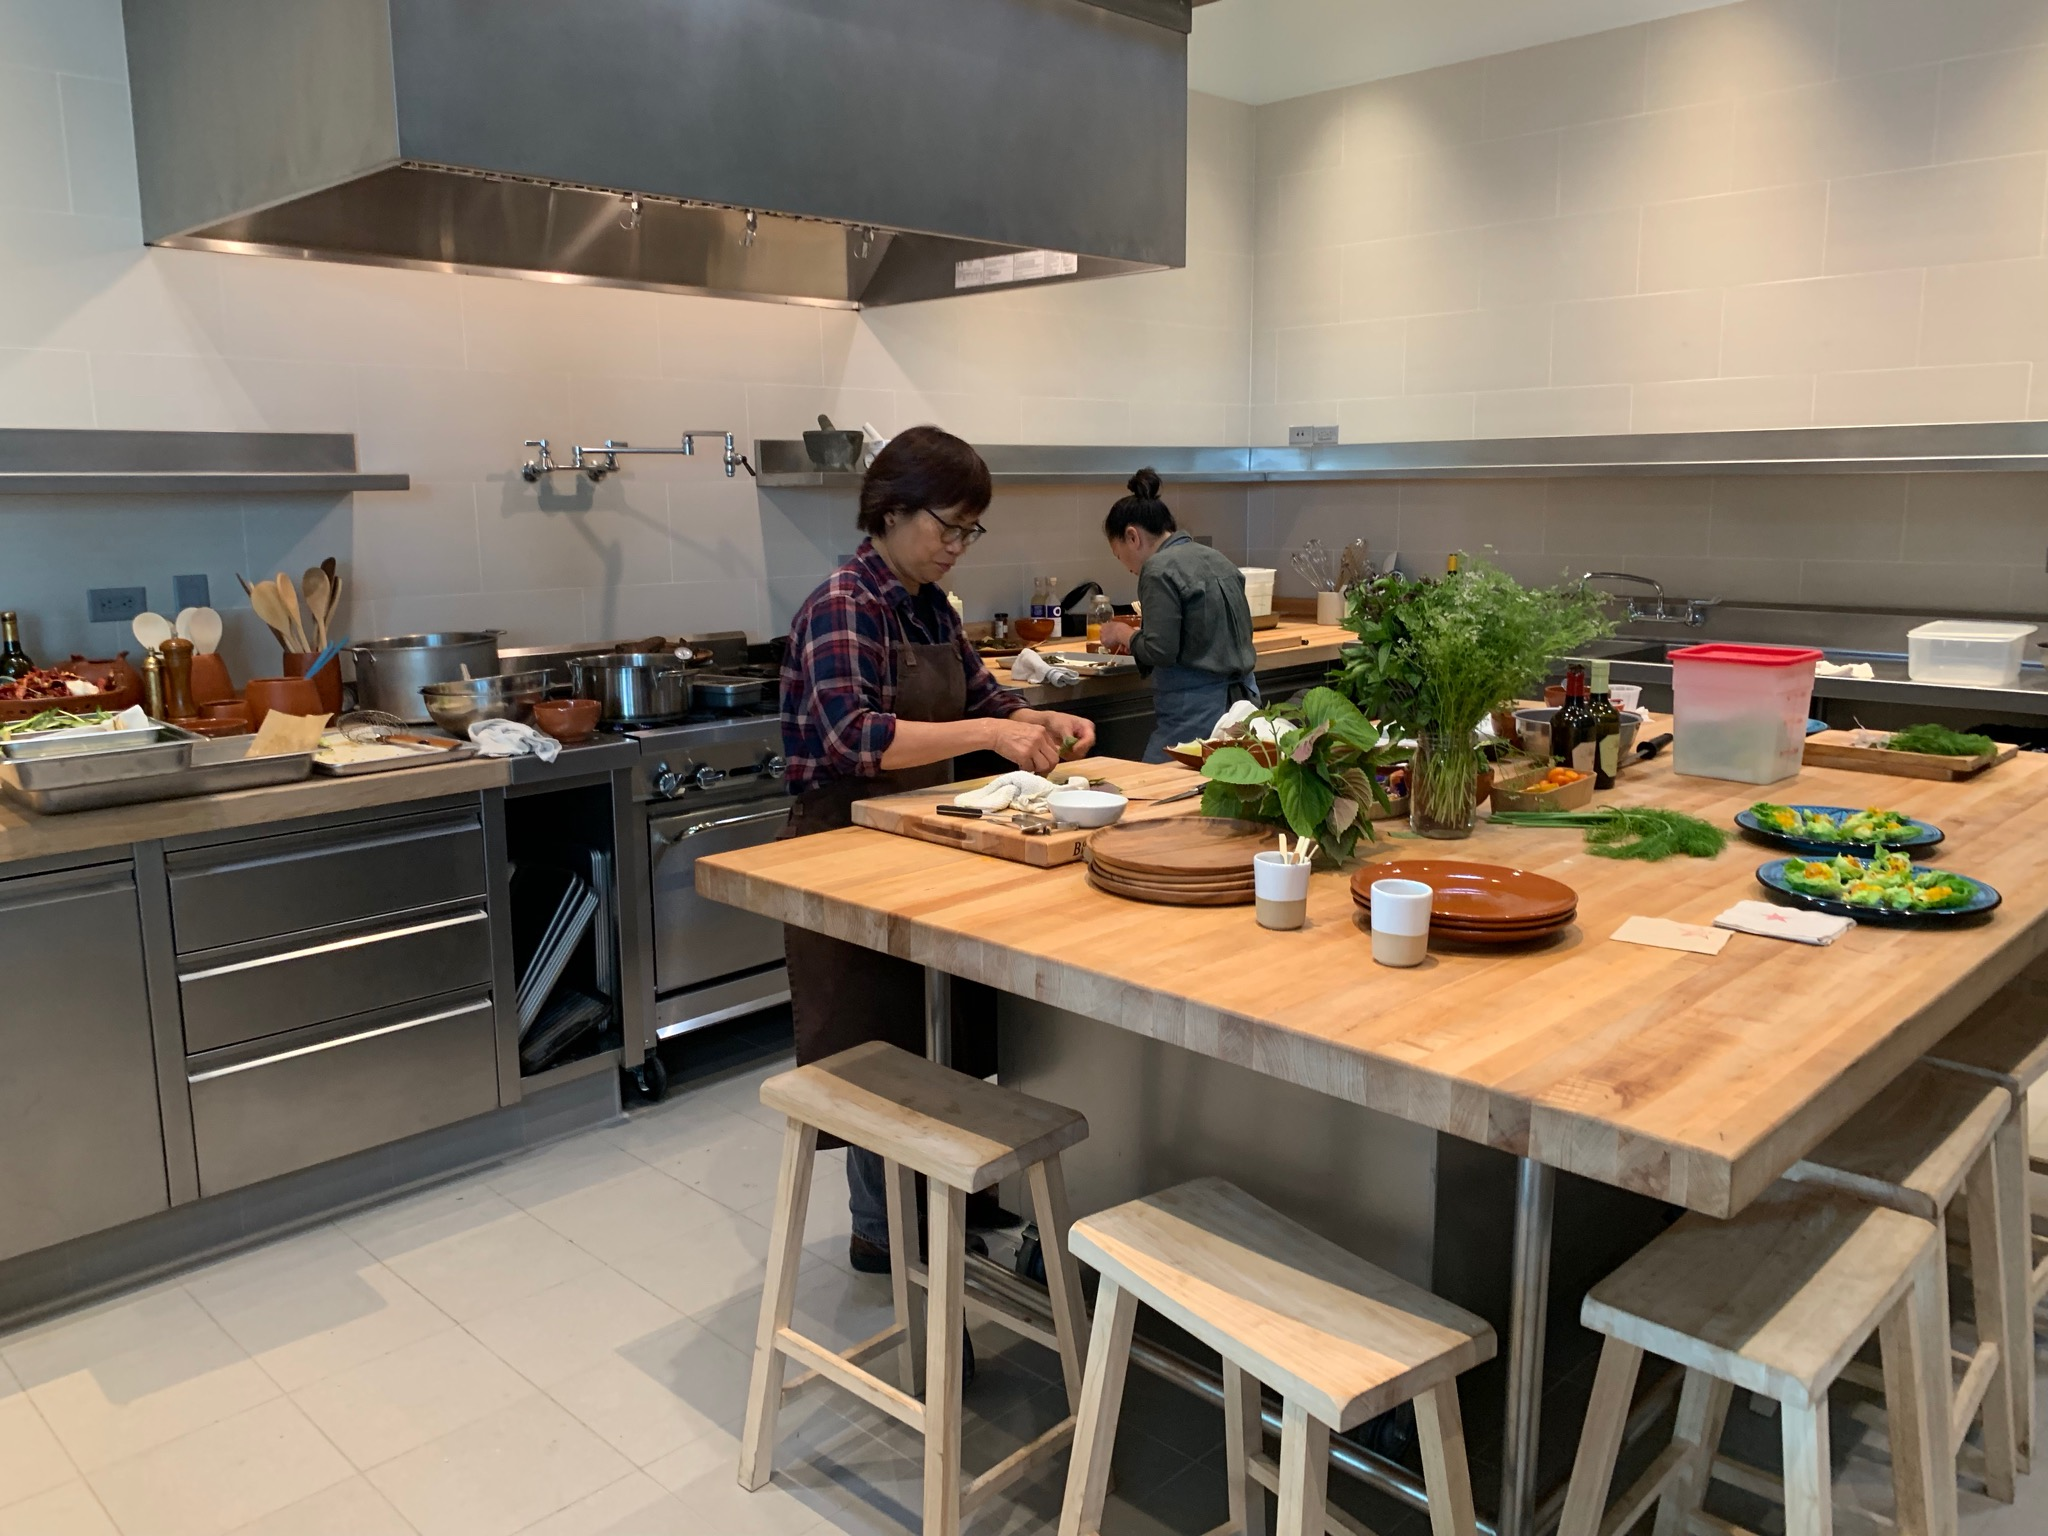 The Commercial Kitchen